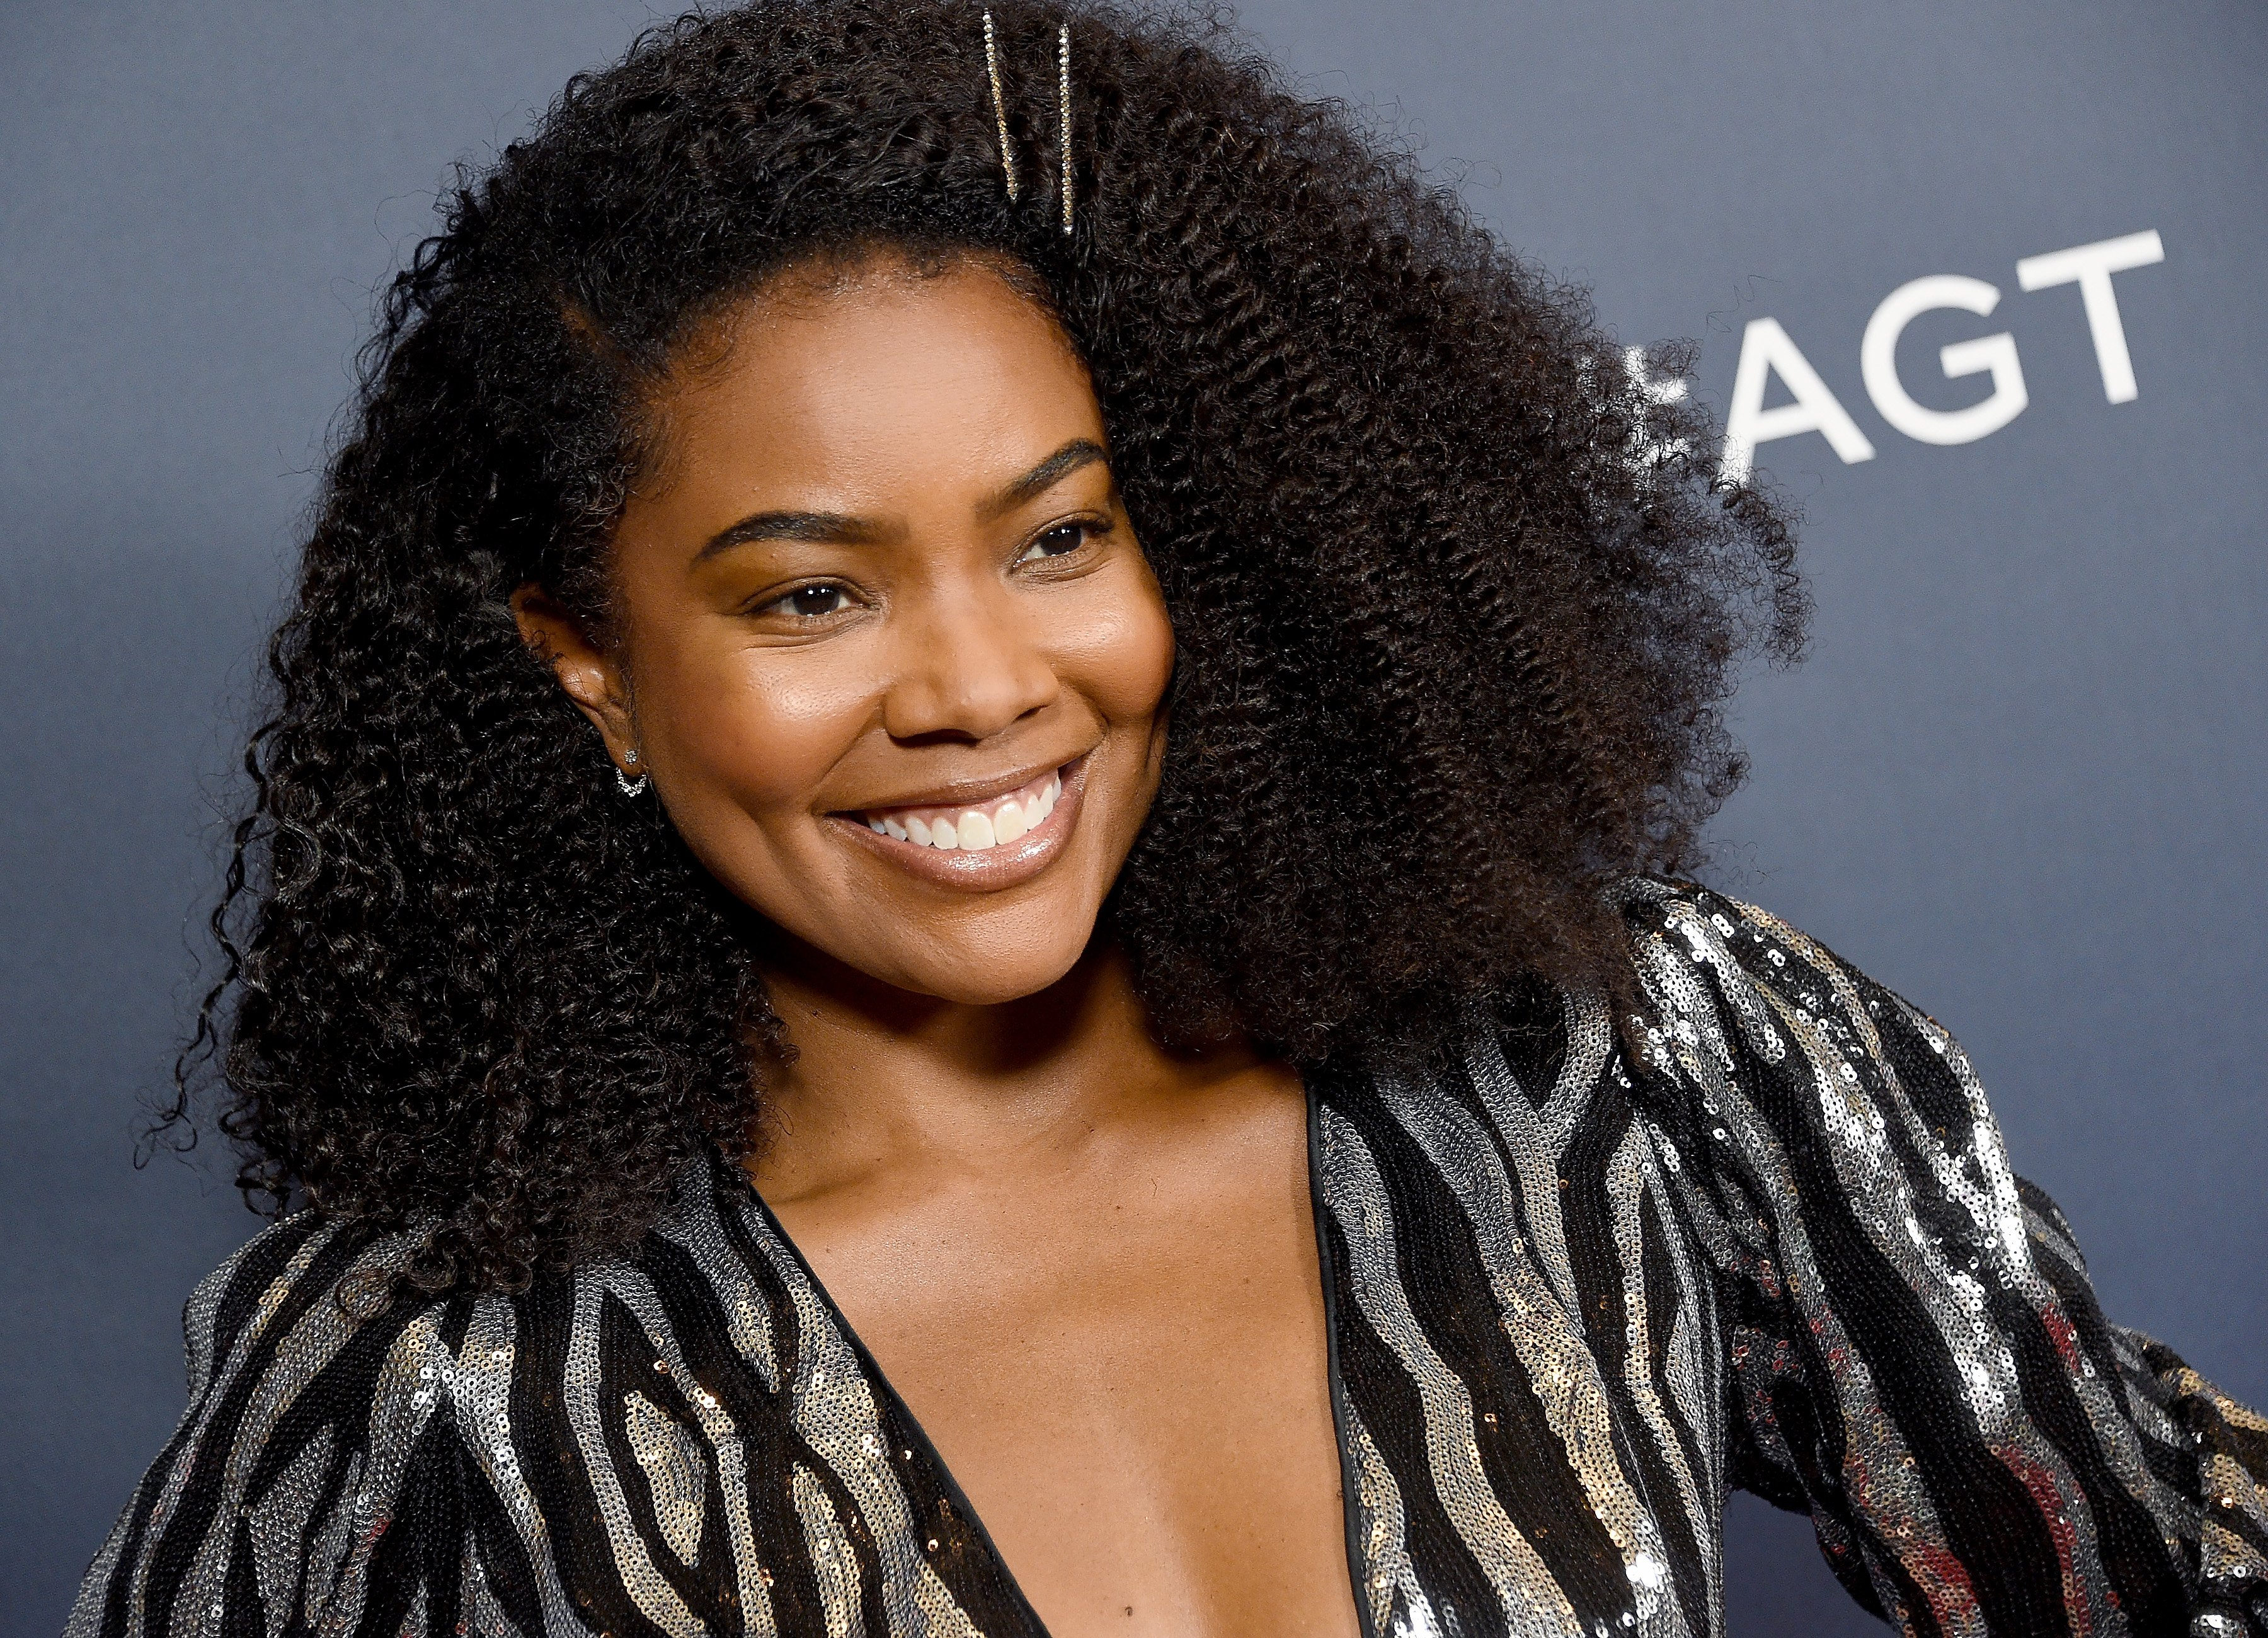 """Gabrielle Union at the """"America's Got Talent"""" Season 14 Live Show Red Carpet at Dolby Theatre on September 10, 2019 in Hollywood, California. 